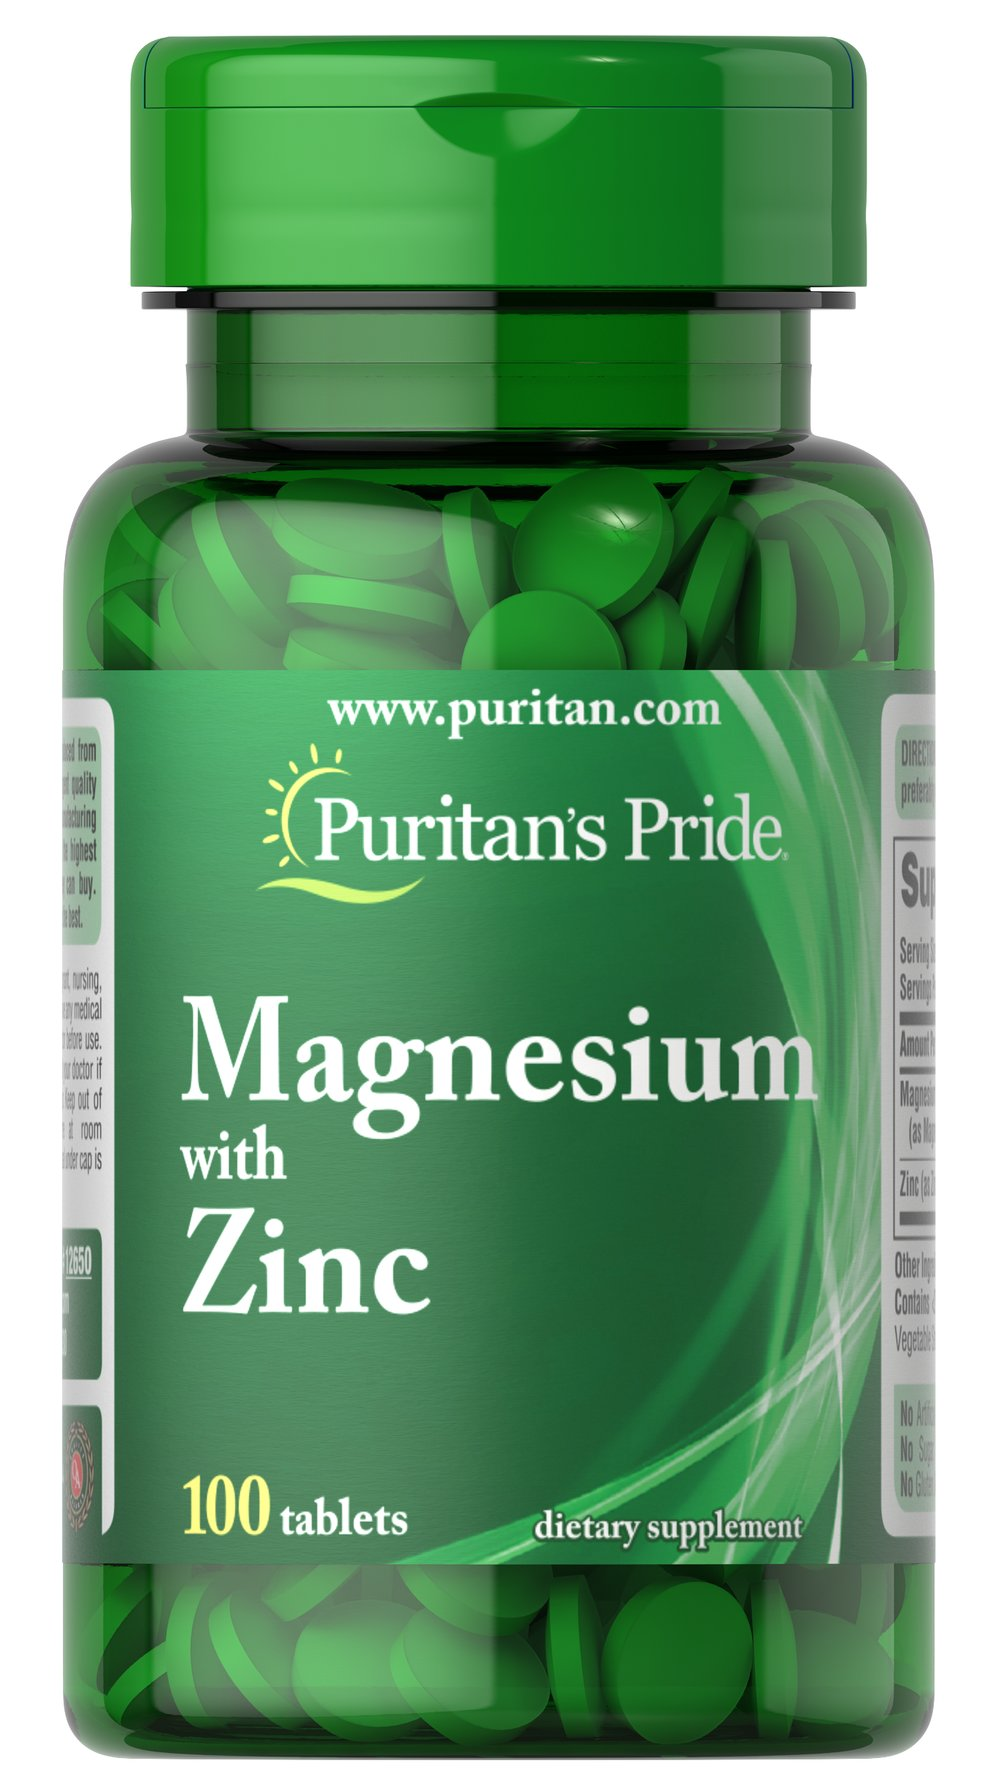 Magnesium with Zinc <p>Minerals are important constituents of any healthy diet.  This supplement is a good source of the Magnesium and Zinc you need everyday for health.** Magnesium helps with bone health, muscle contraction and nervous system promotion.** Zinc is great for immune system health and cell growth.** Together, they make up a quality supplement that ensures a sufficient daily intake of these important nutrients.**</p> 100 Tablets 266 mg/10 mg $7.29